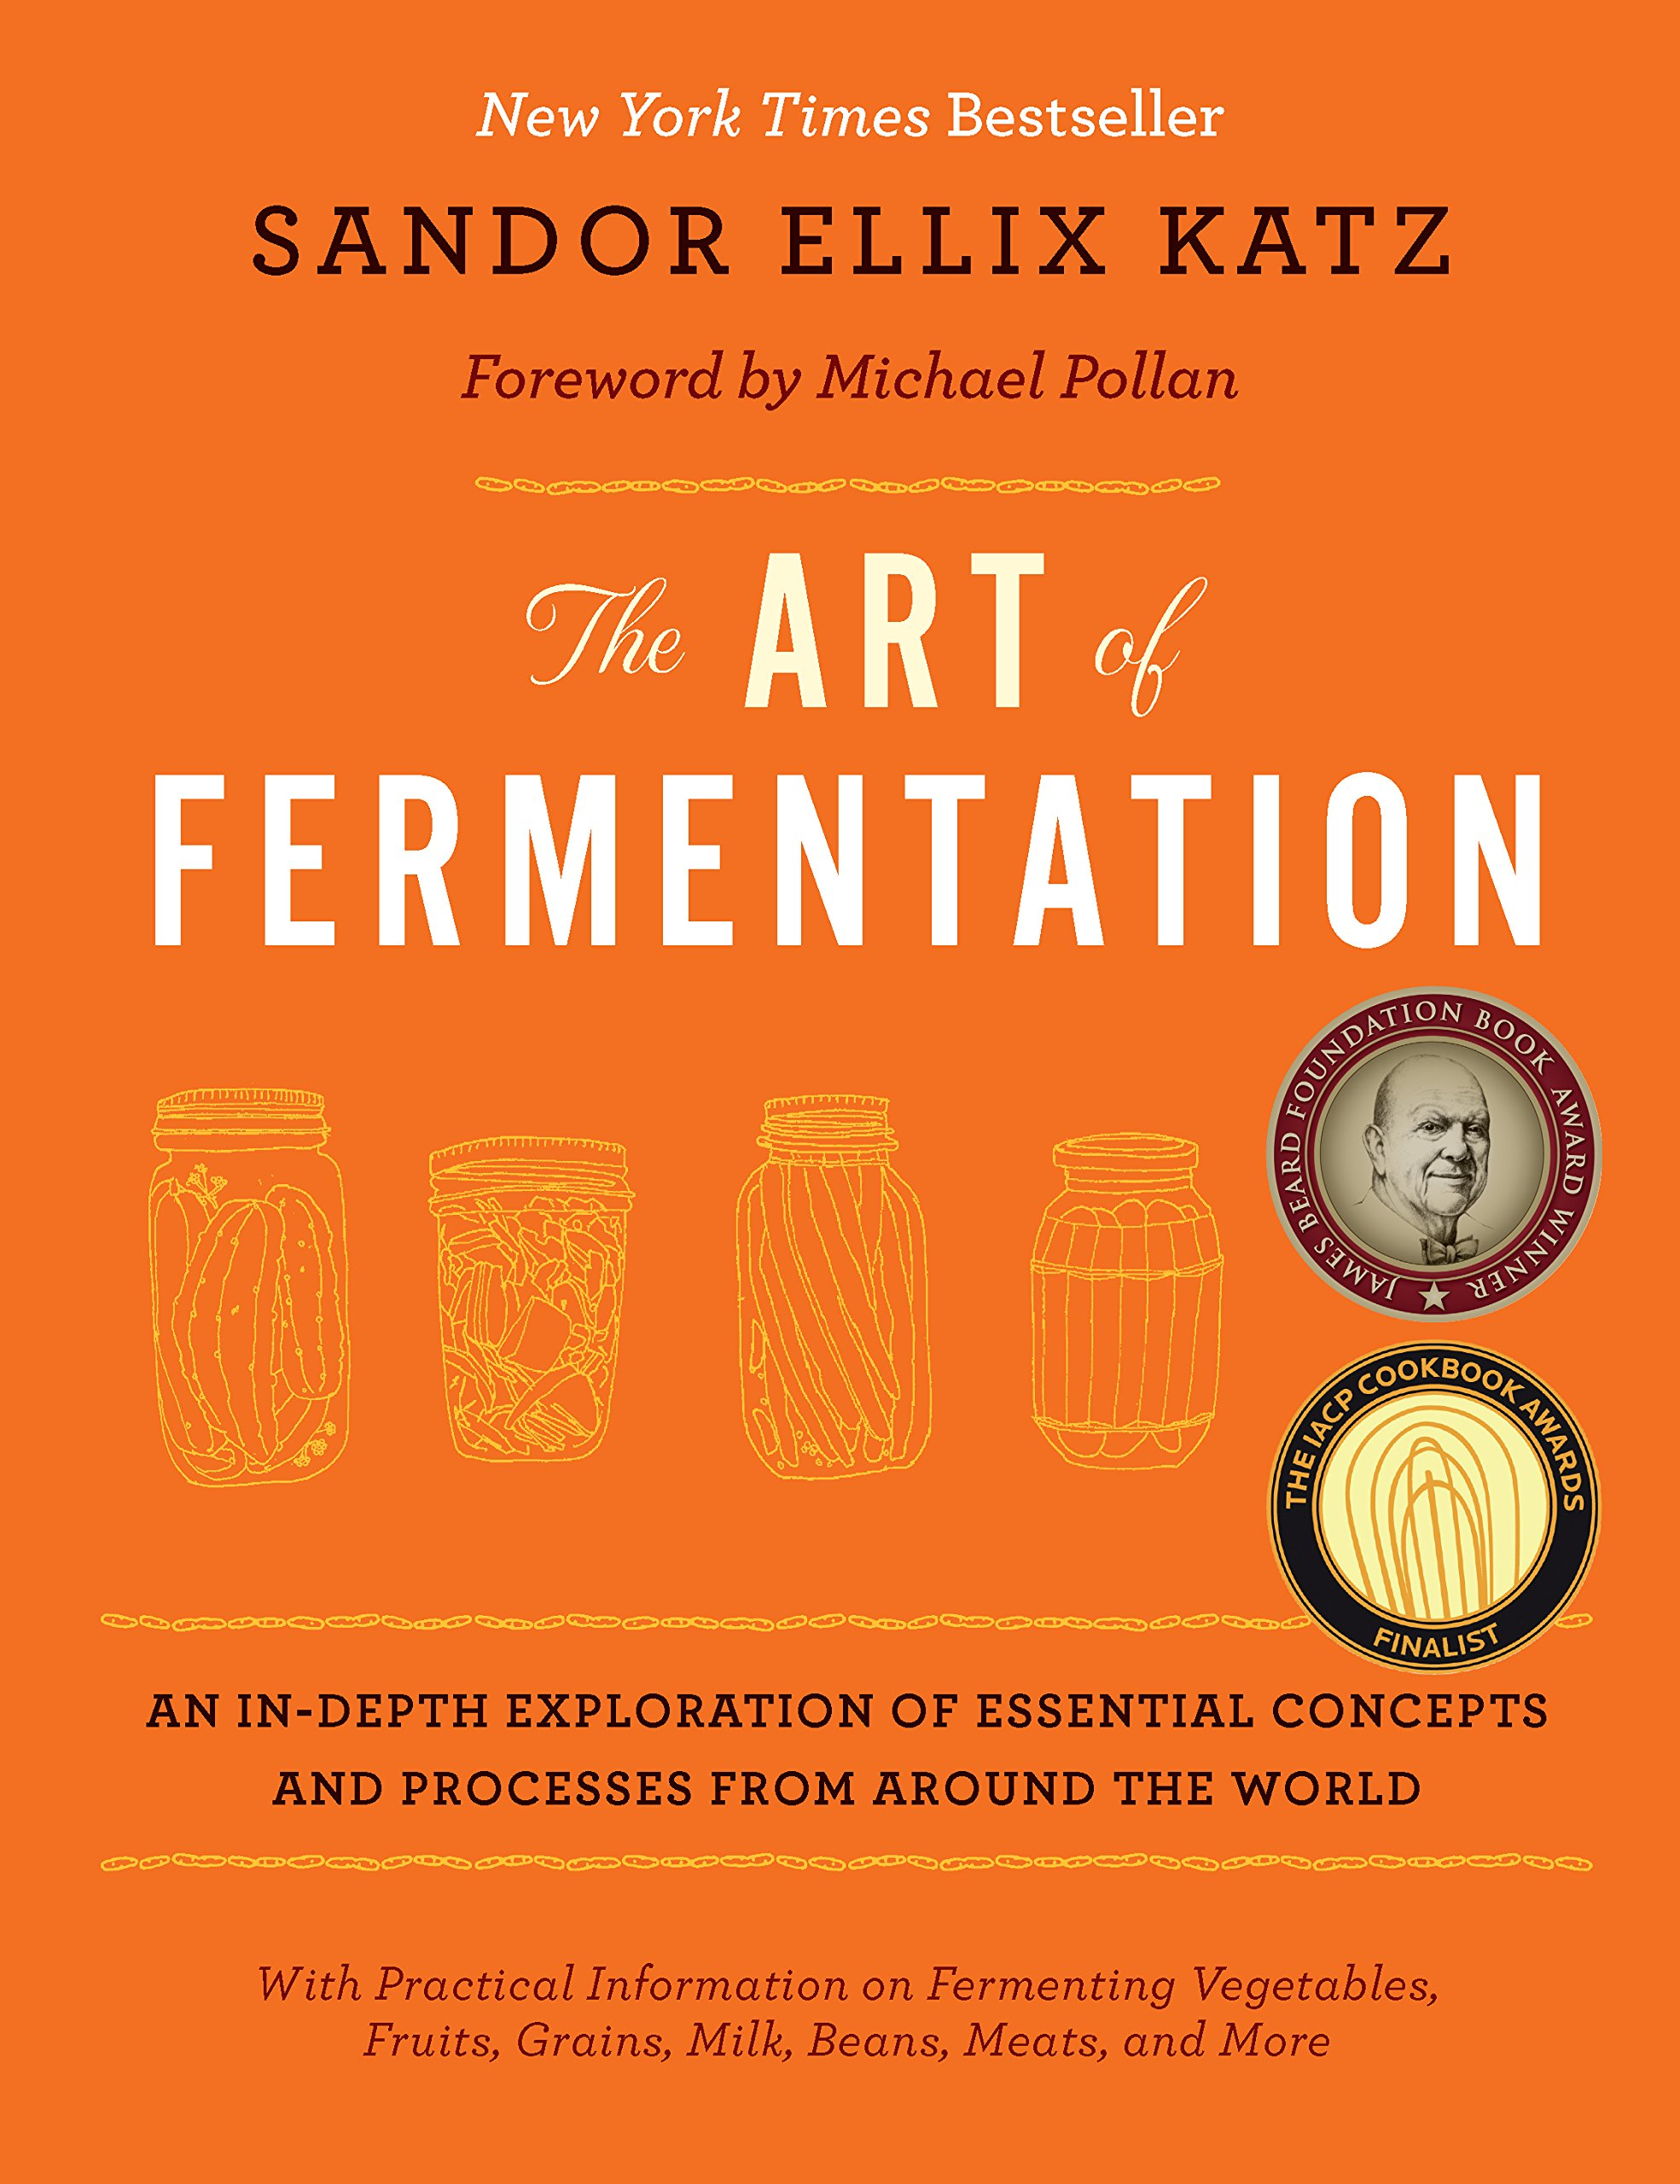 The Art of Fermentation: An In-Depth Exploration of Essential Concepts and Processes from Around the World book cover